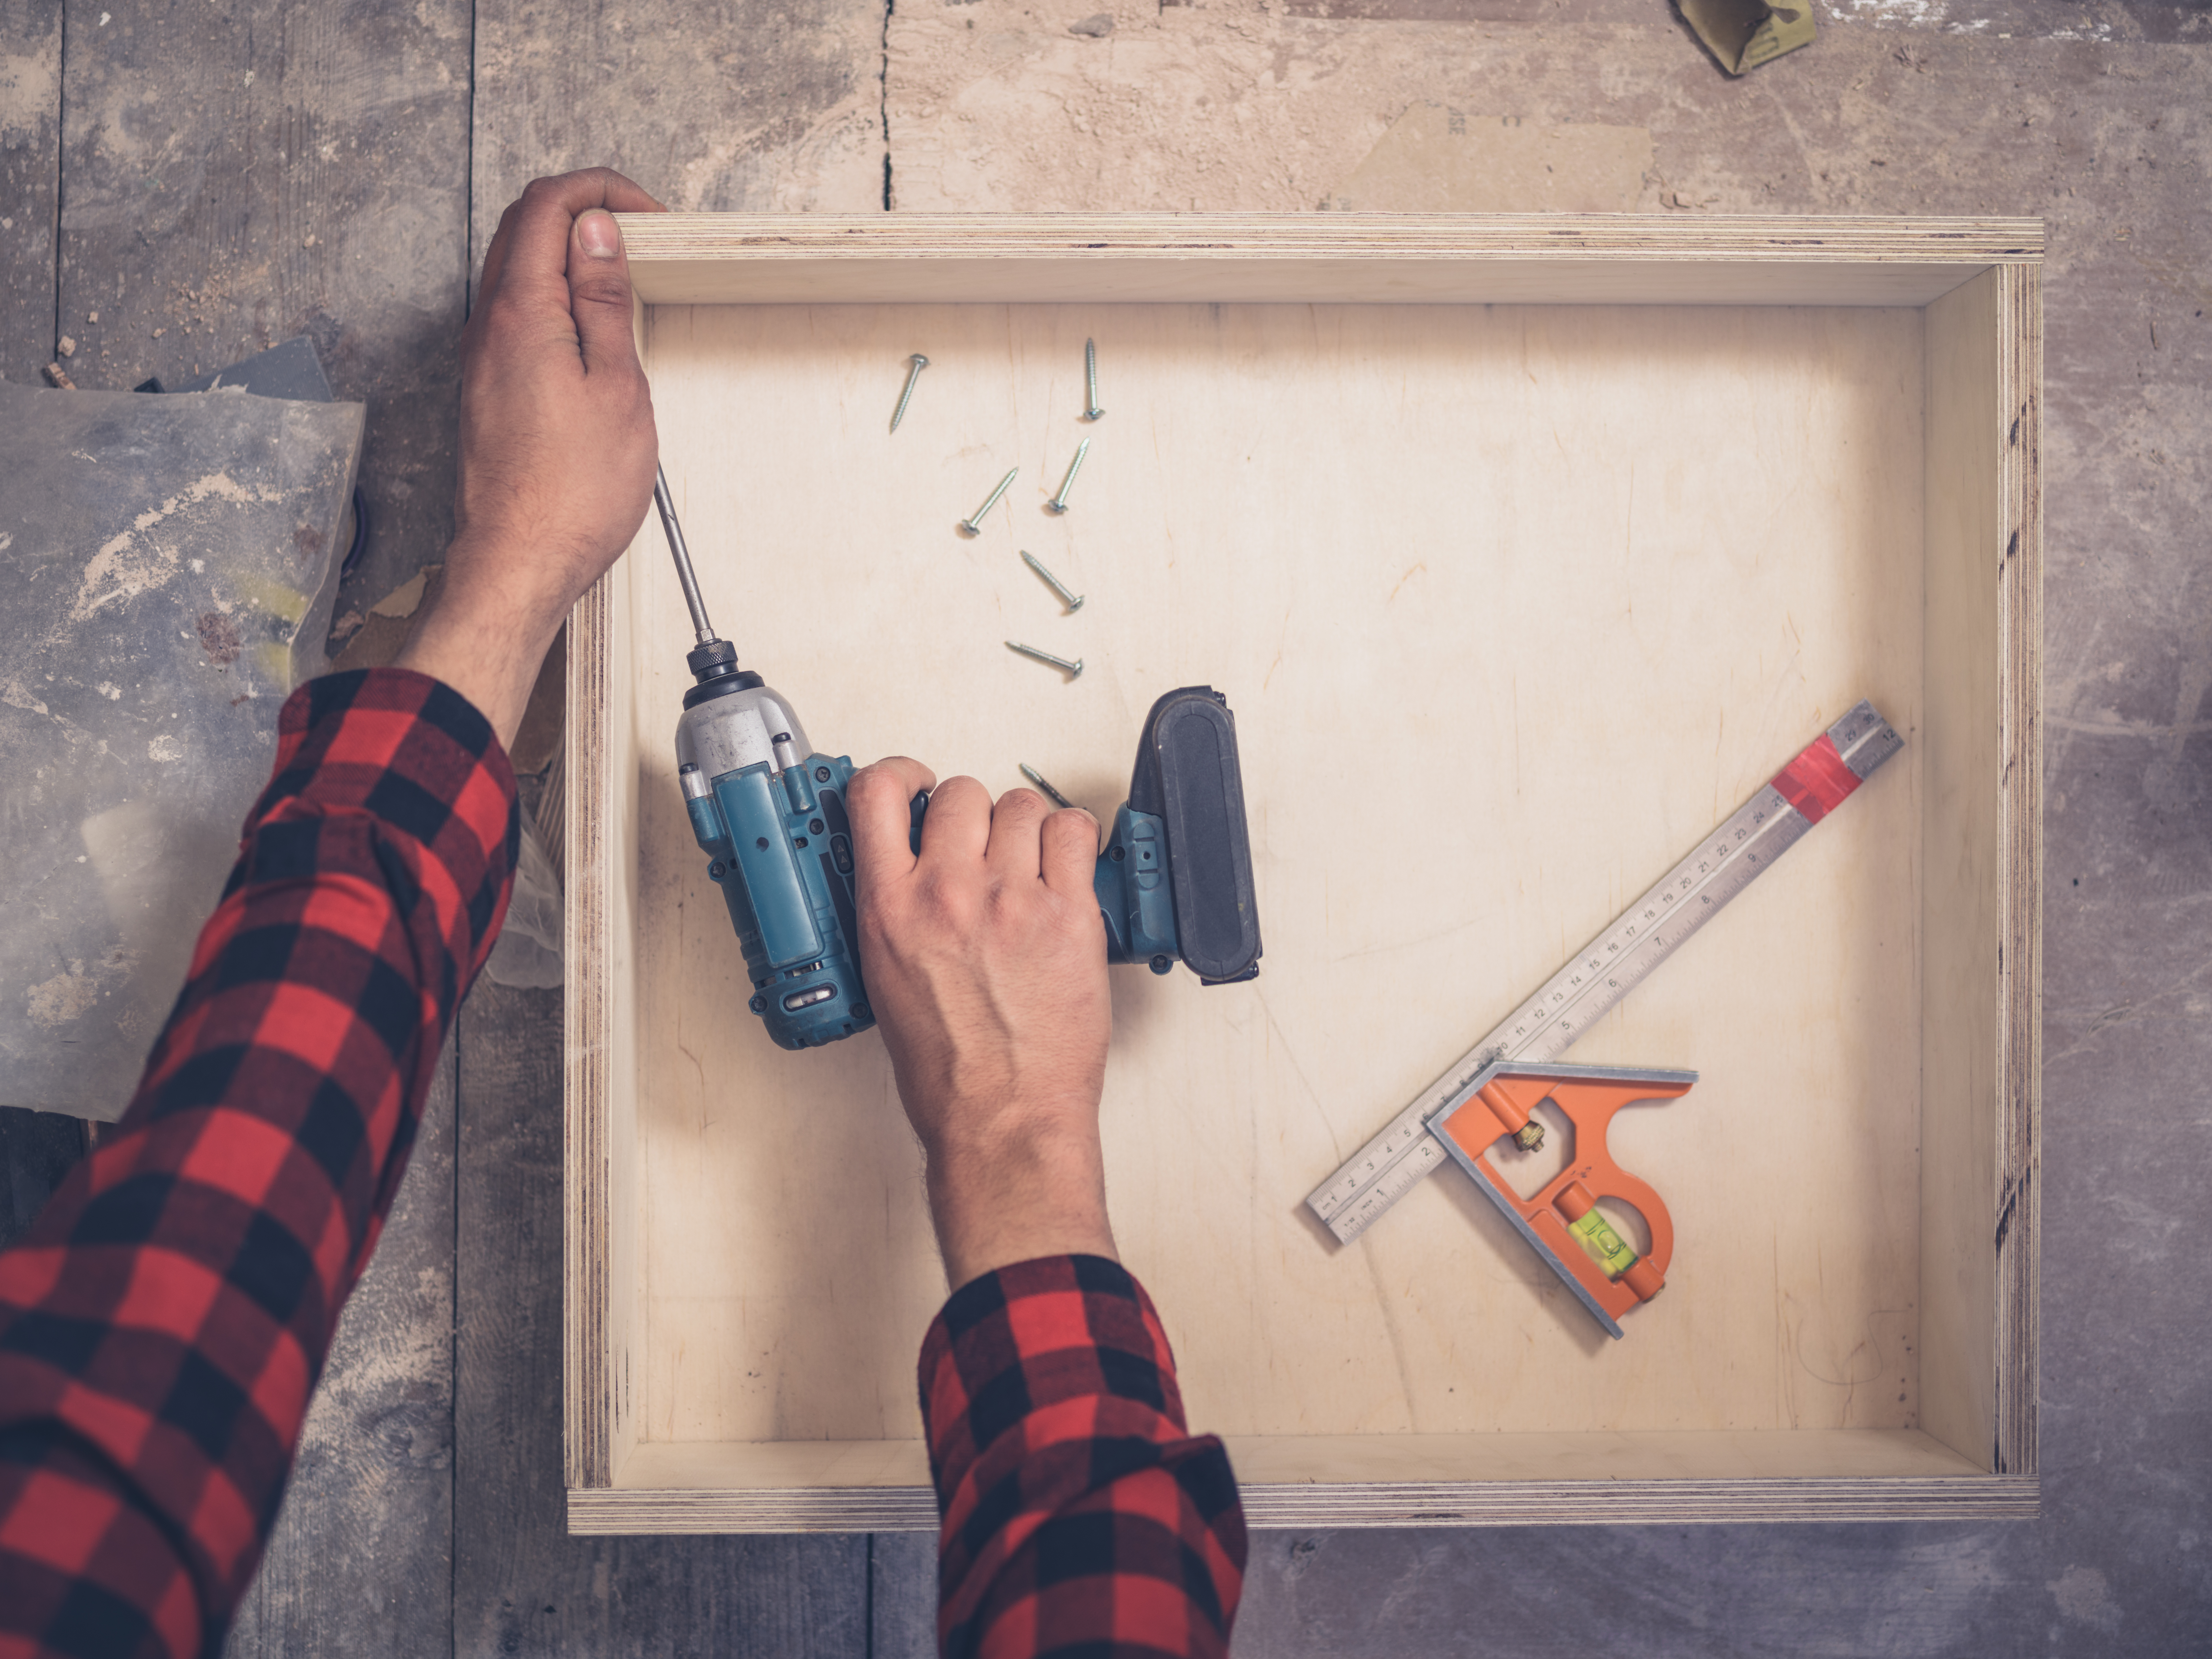 Man holding tools over a drawer